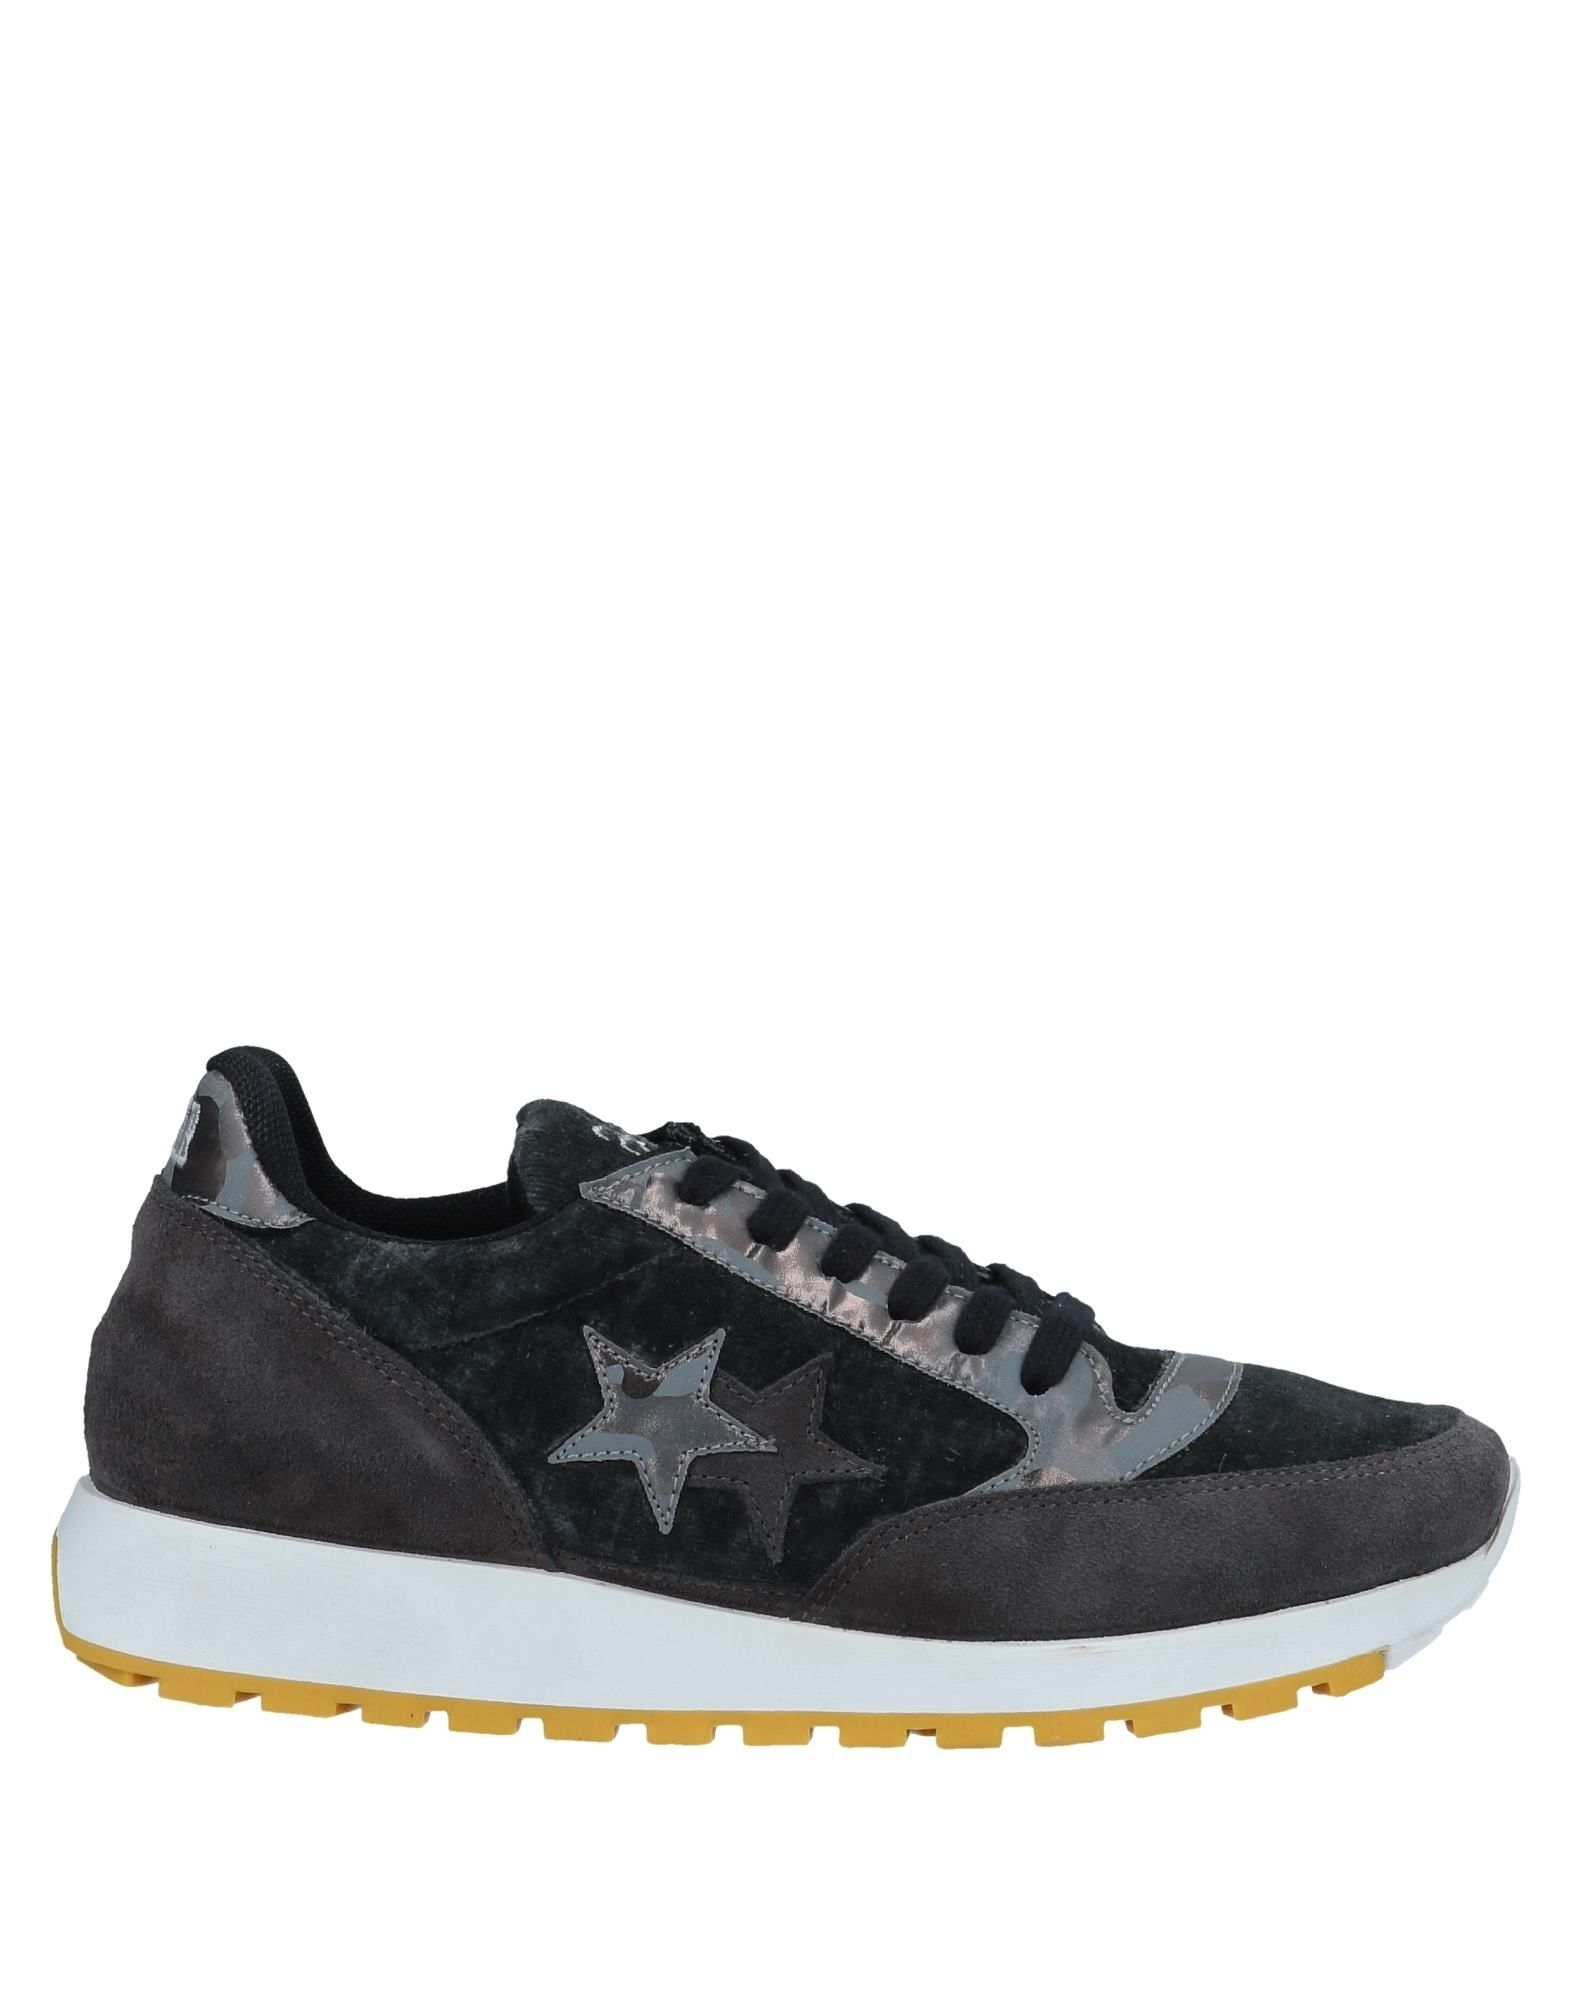 2Star Sneakers  - Women 2Star Sneakers online on  Sneakers Canada - 11550861WF efb5dc